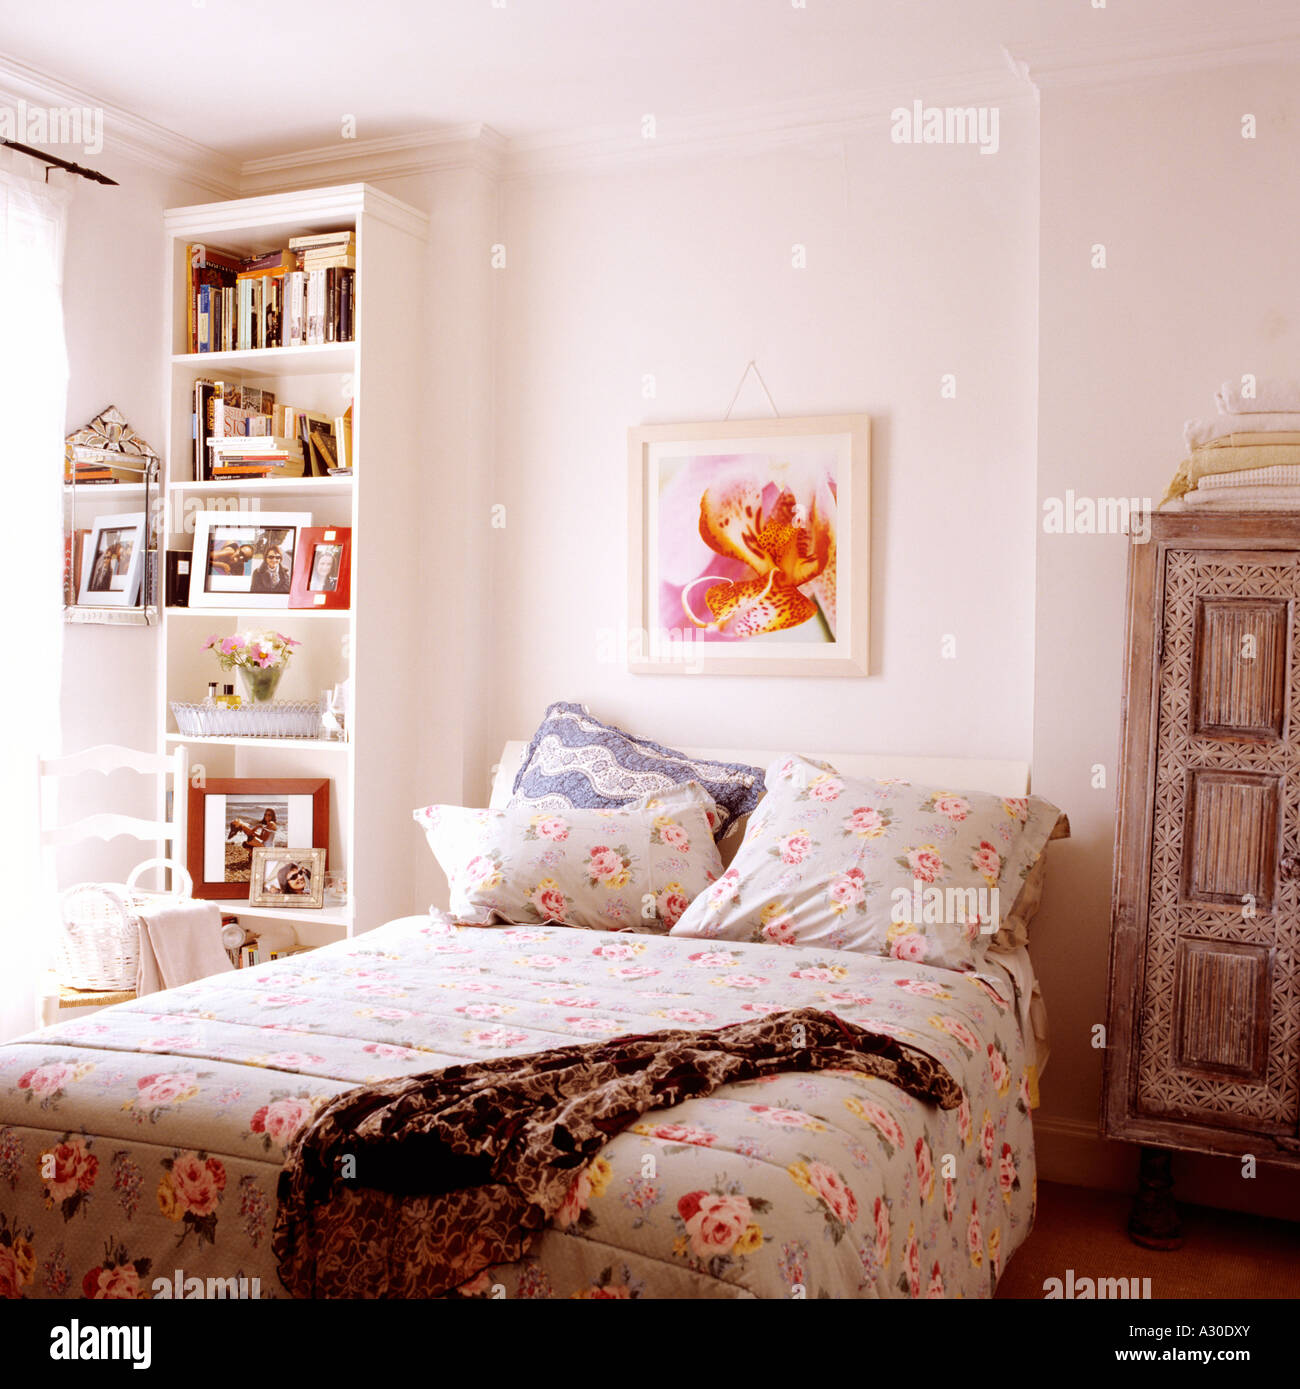 Floral patterned bed cover on queen sized bed under artwork with bookcase - Stock Image